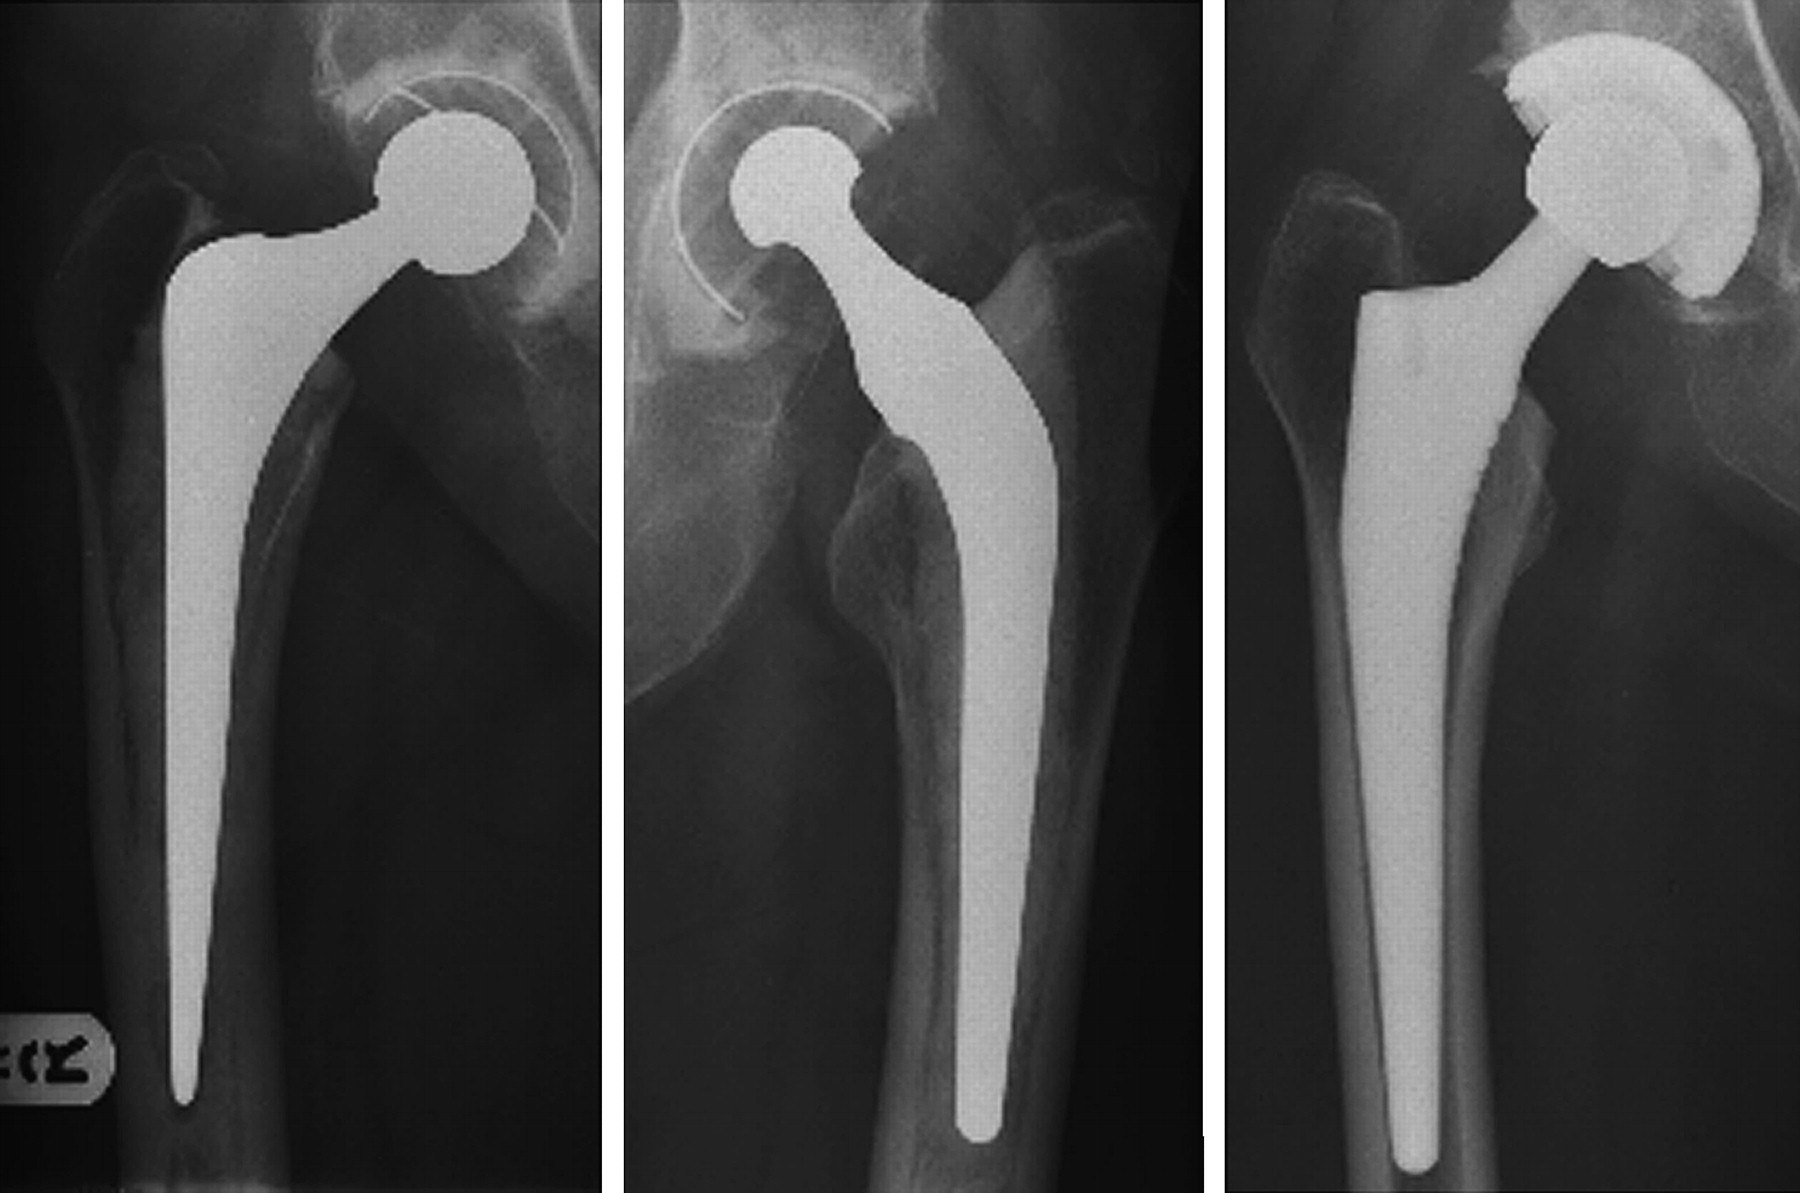 bacteria in hip replacement prothesis International scholarly research notices is a and compare bacterial findings in prosthetic hip joint patients undergoing total hip replacement.